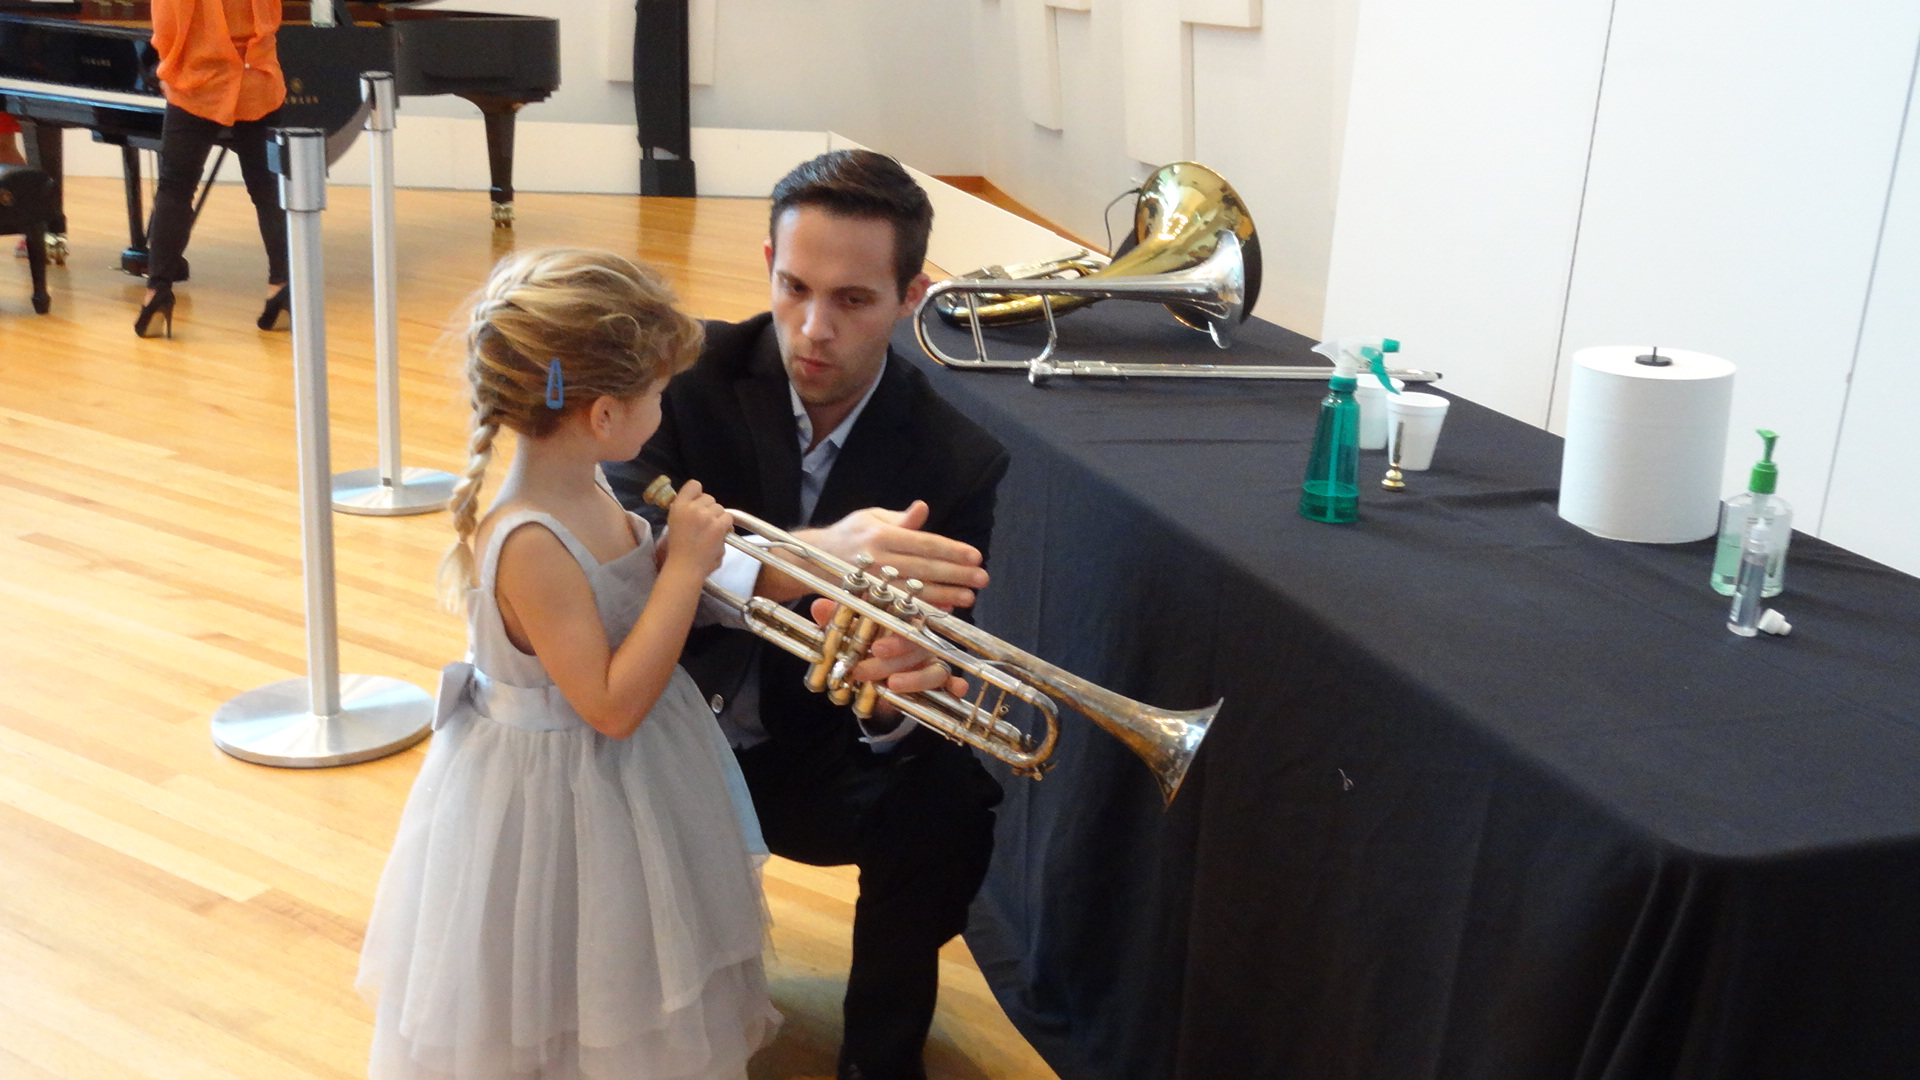 NWS Teaching the next Alison Balsom!